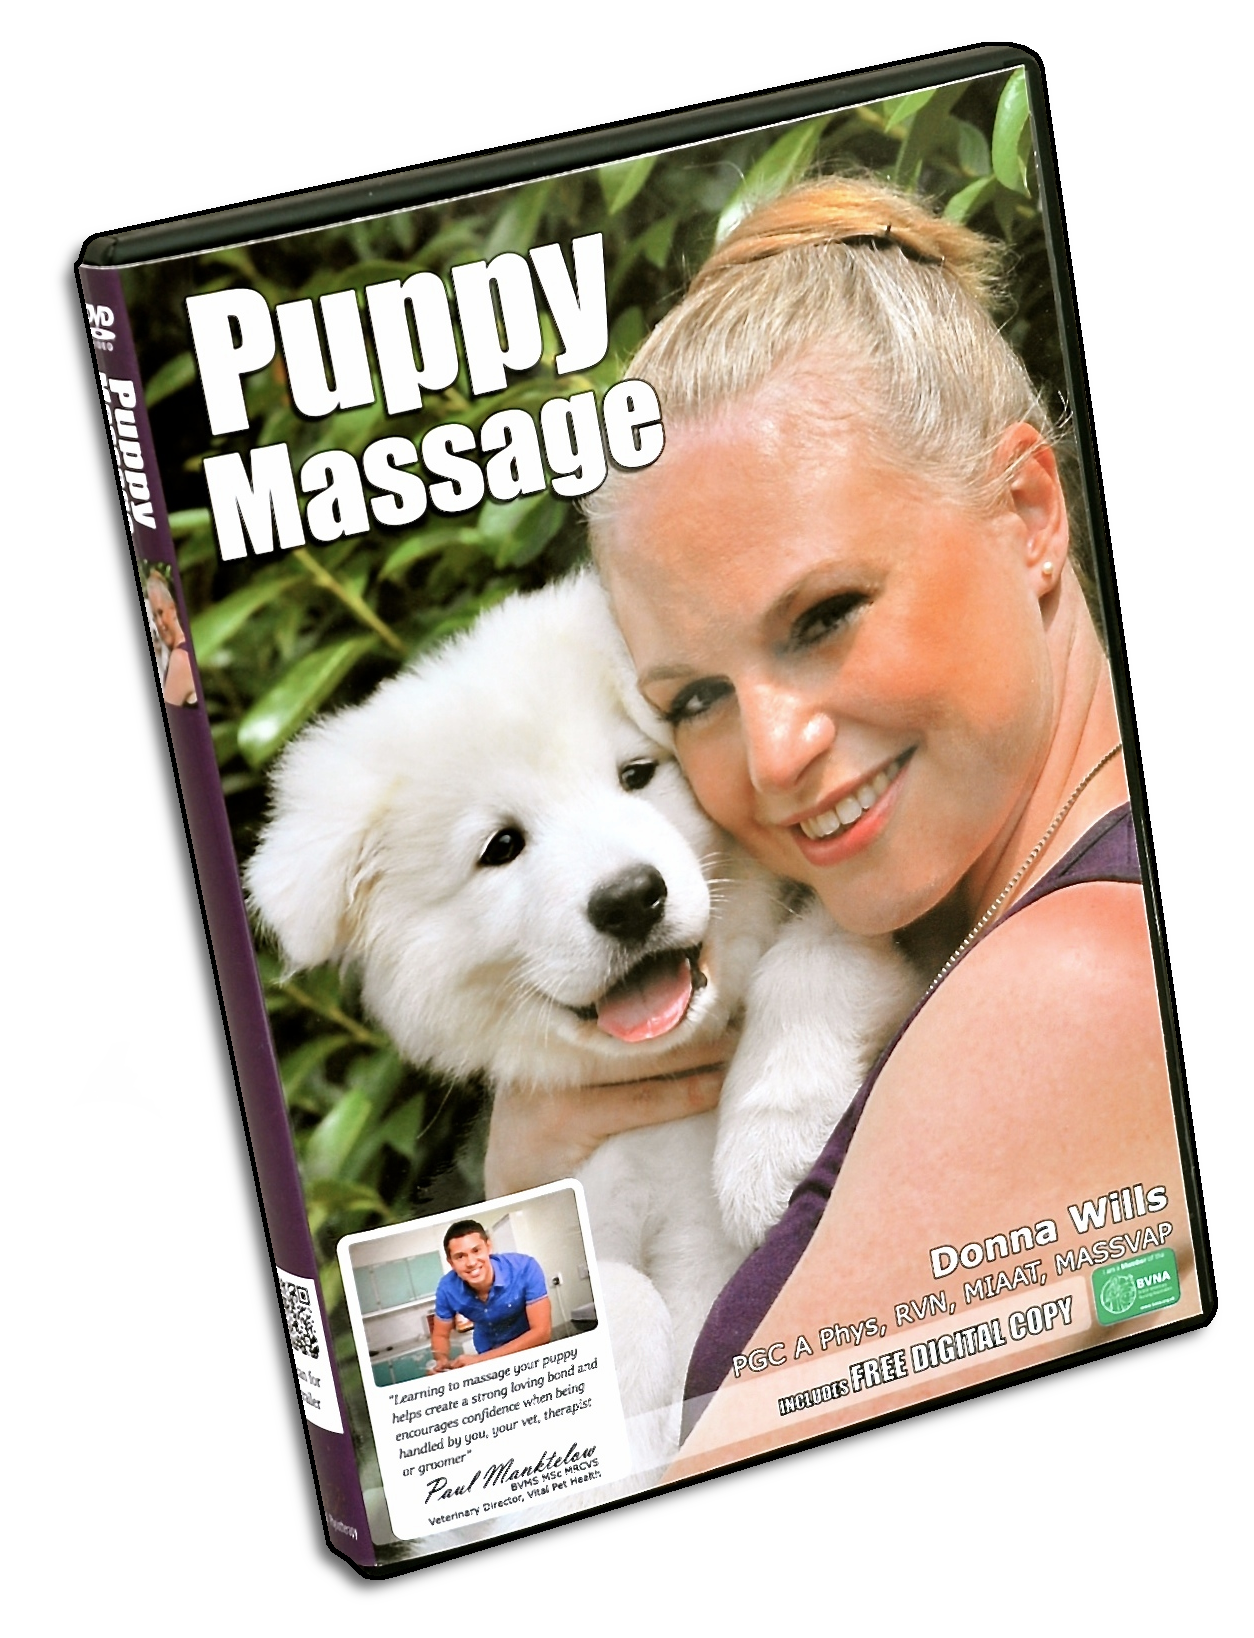 Puppy Massage DVD - Kickstarter